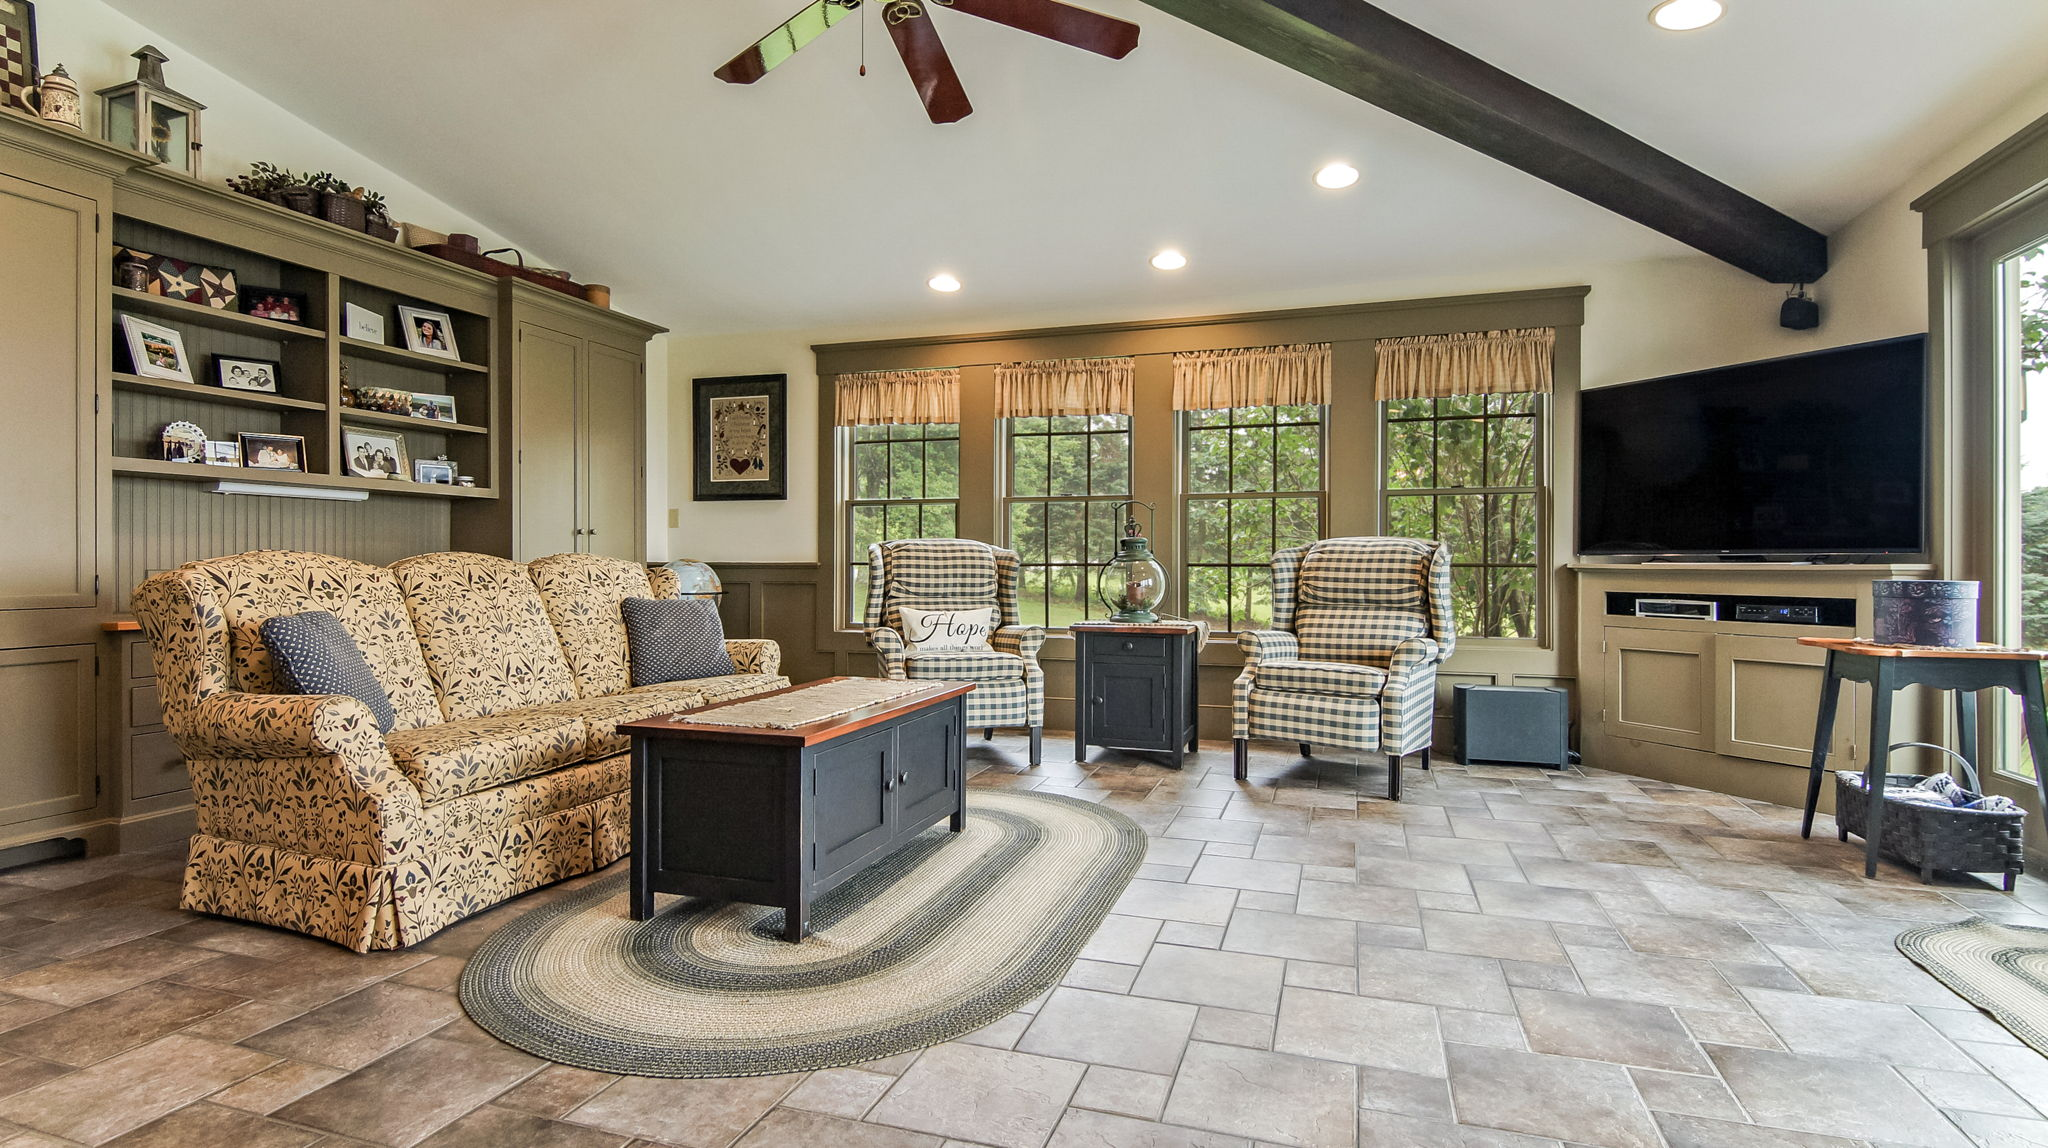 Expansive Living Room With Vaulted Ceiling